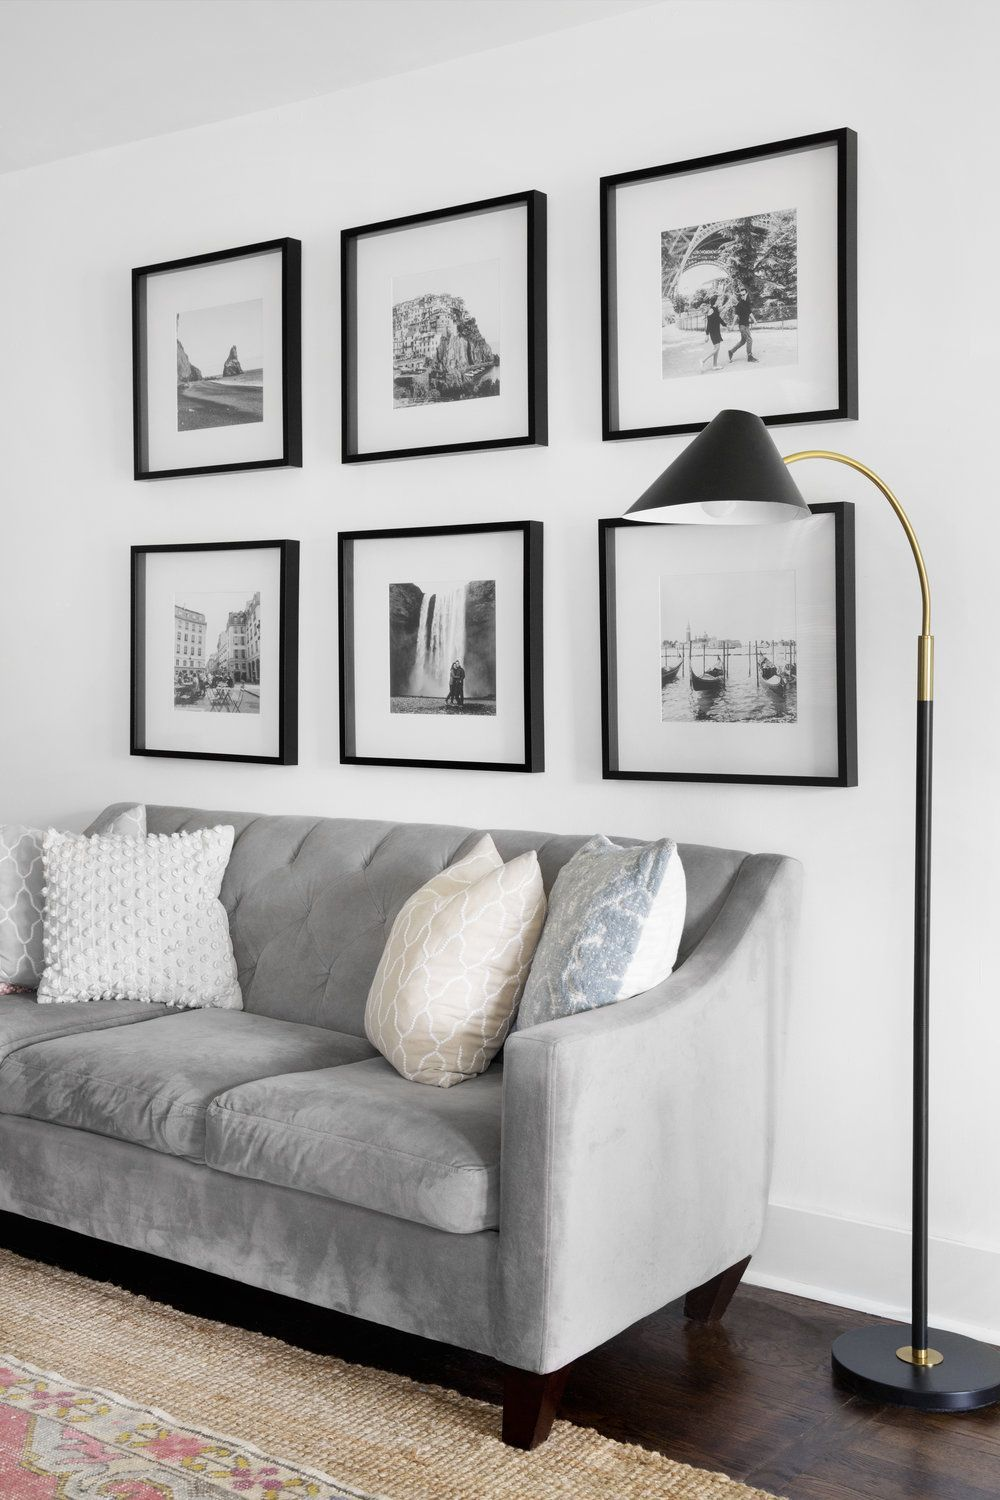 Black And White Photo Grid Gallery Wall Black And White Travel Photos In Black Ikea Frames Galler In 2020 Picture Wall Living Room Frames On Wall Living Room Photos